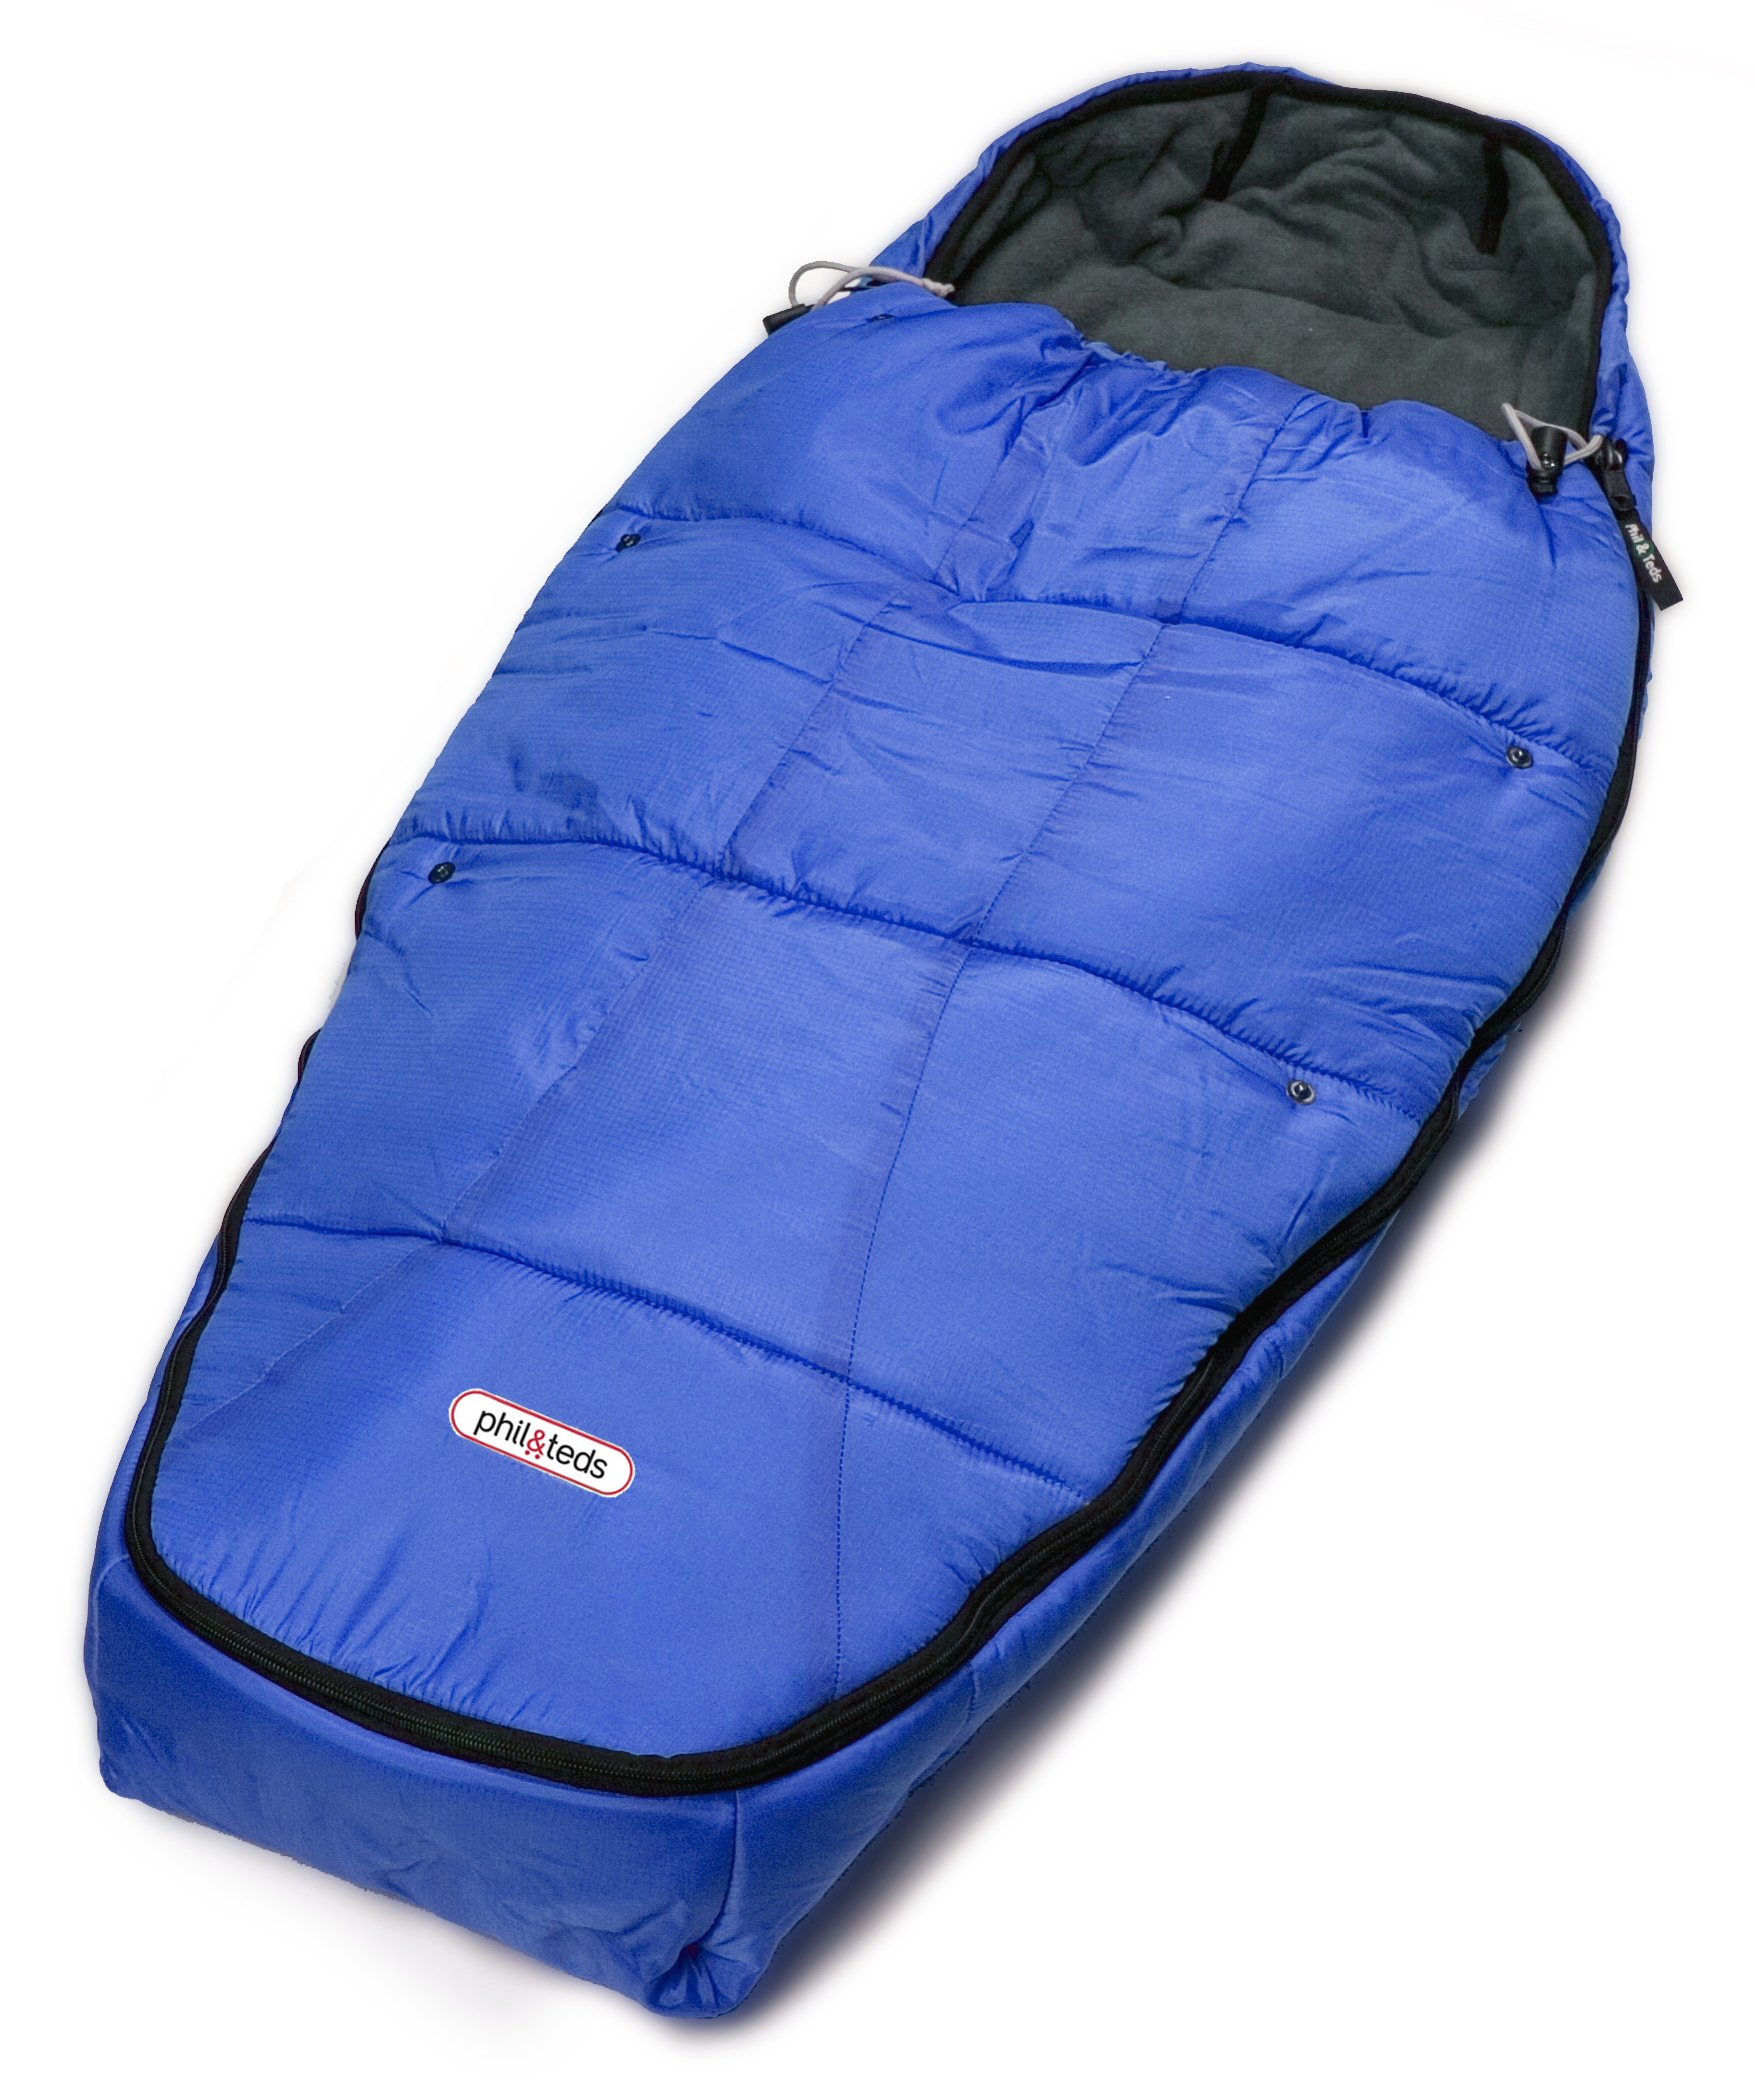 Phil Teds E3SB Sleeping Bag Color Blue